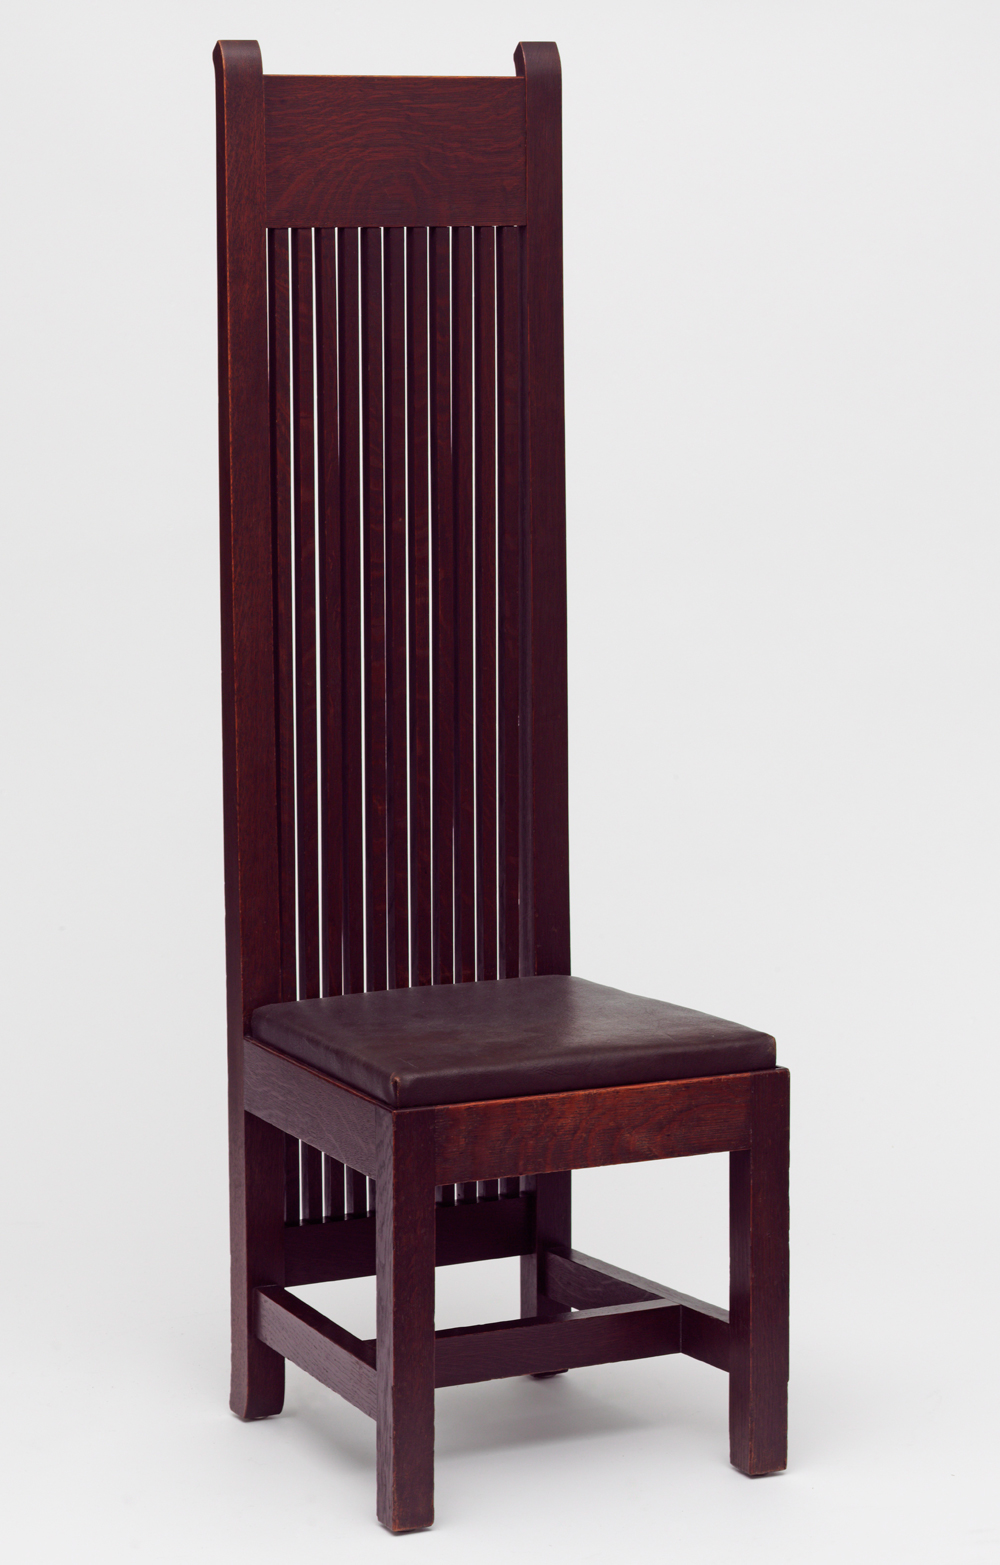 Arts and crafts movement design - Dining Chair Frank Lloyd Wright 1902 Museum No W 4 1992